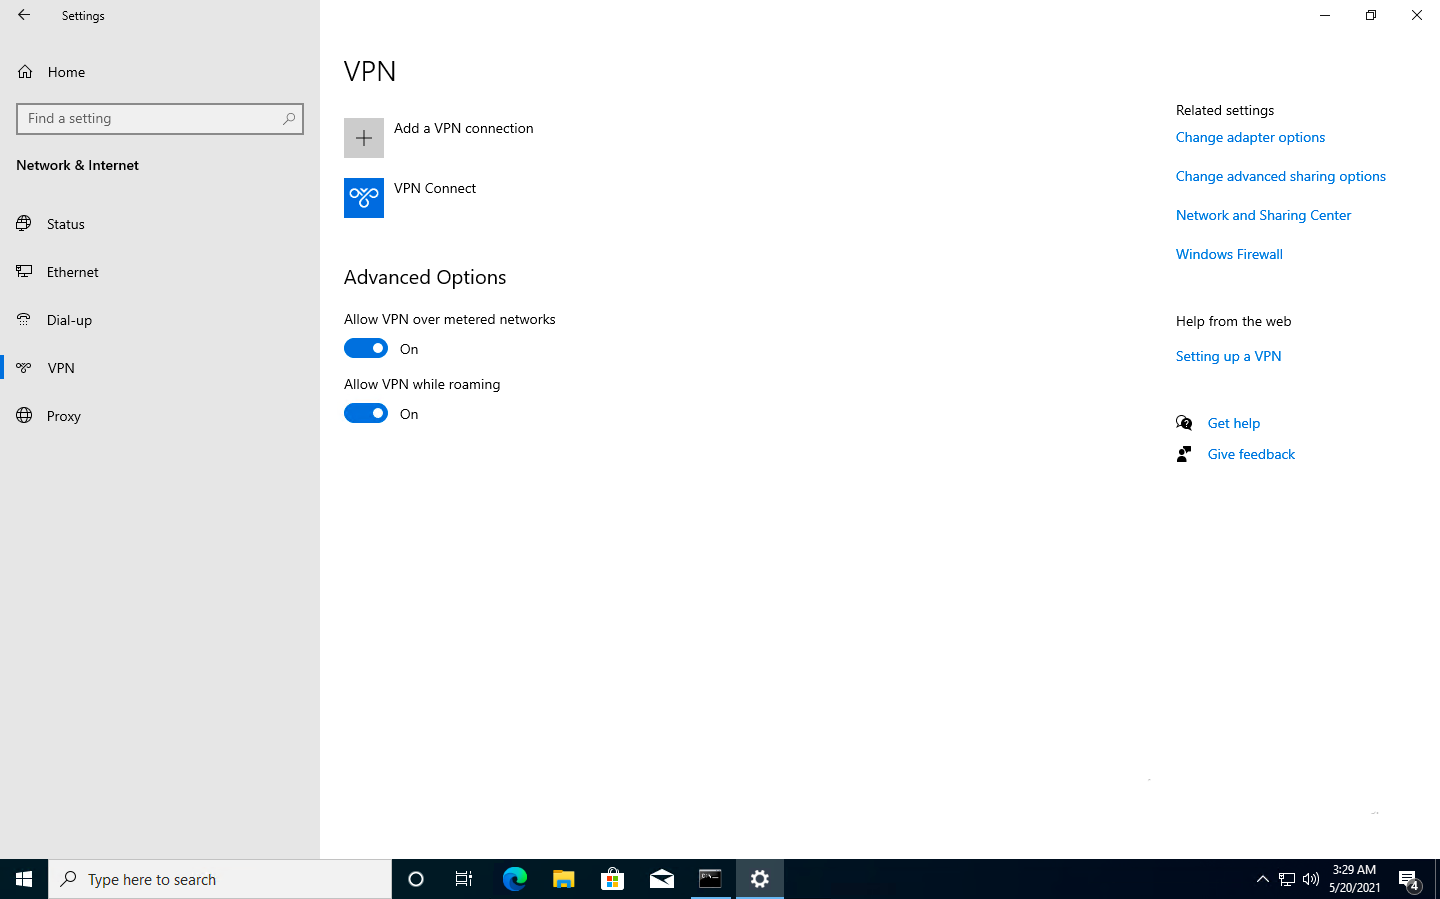 Configured VPN connection on the device.